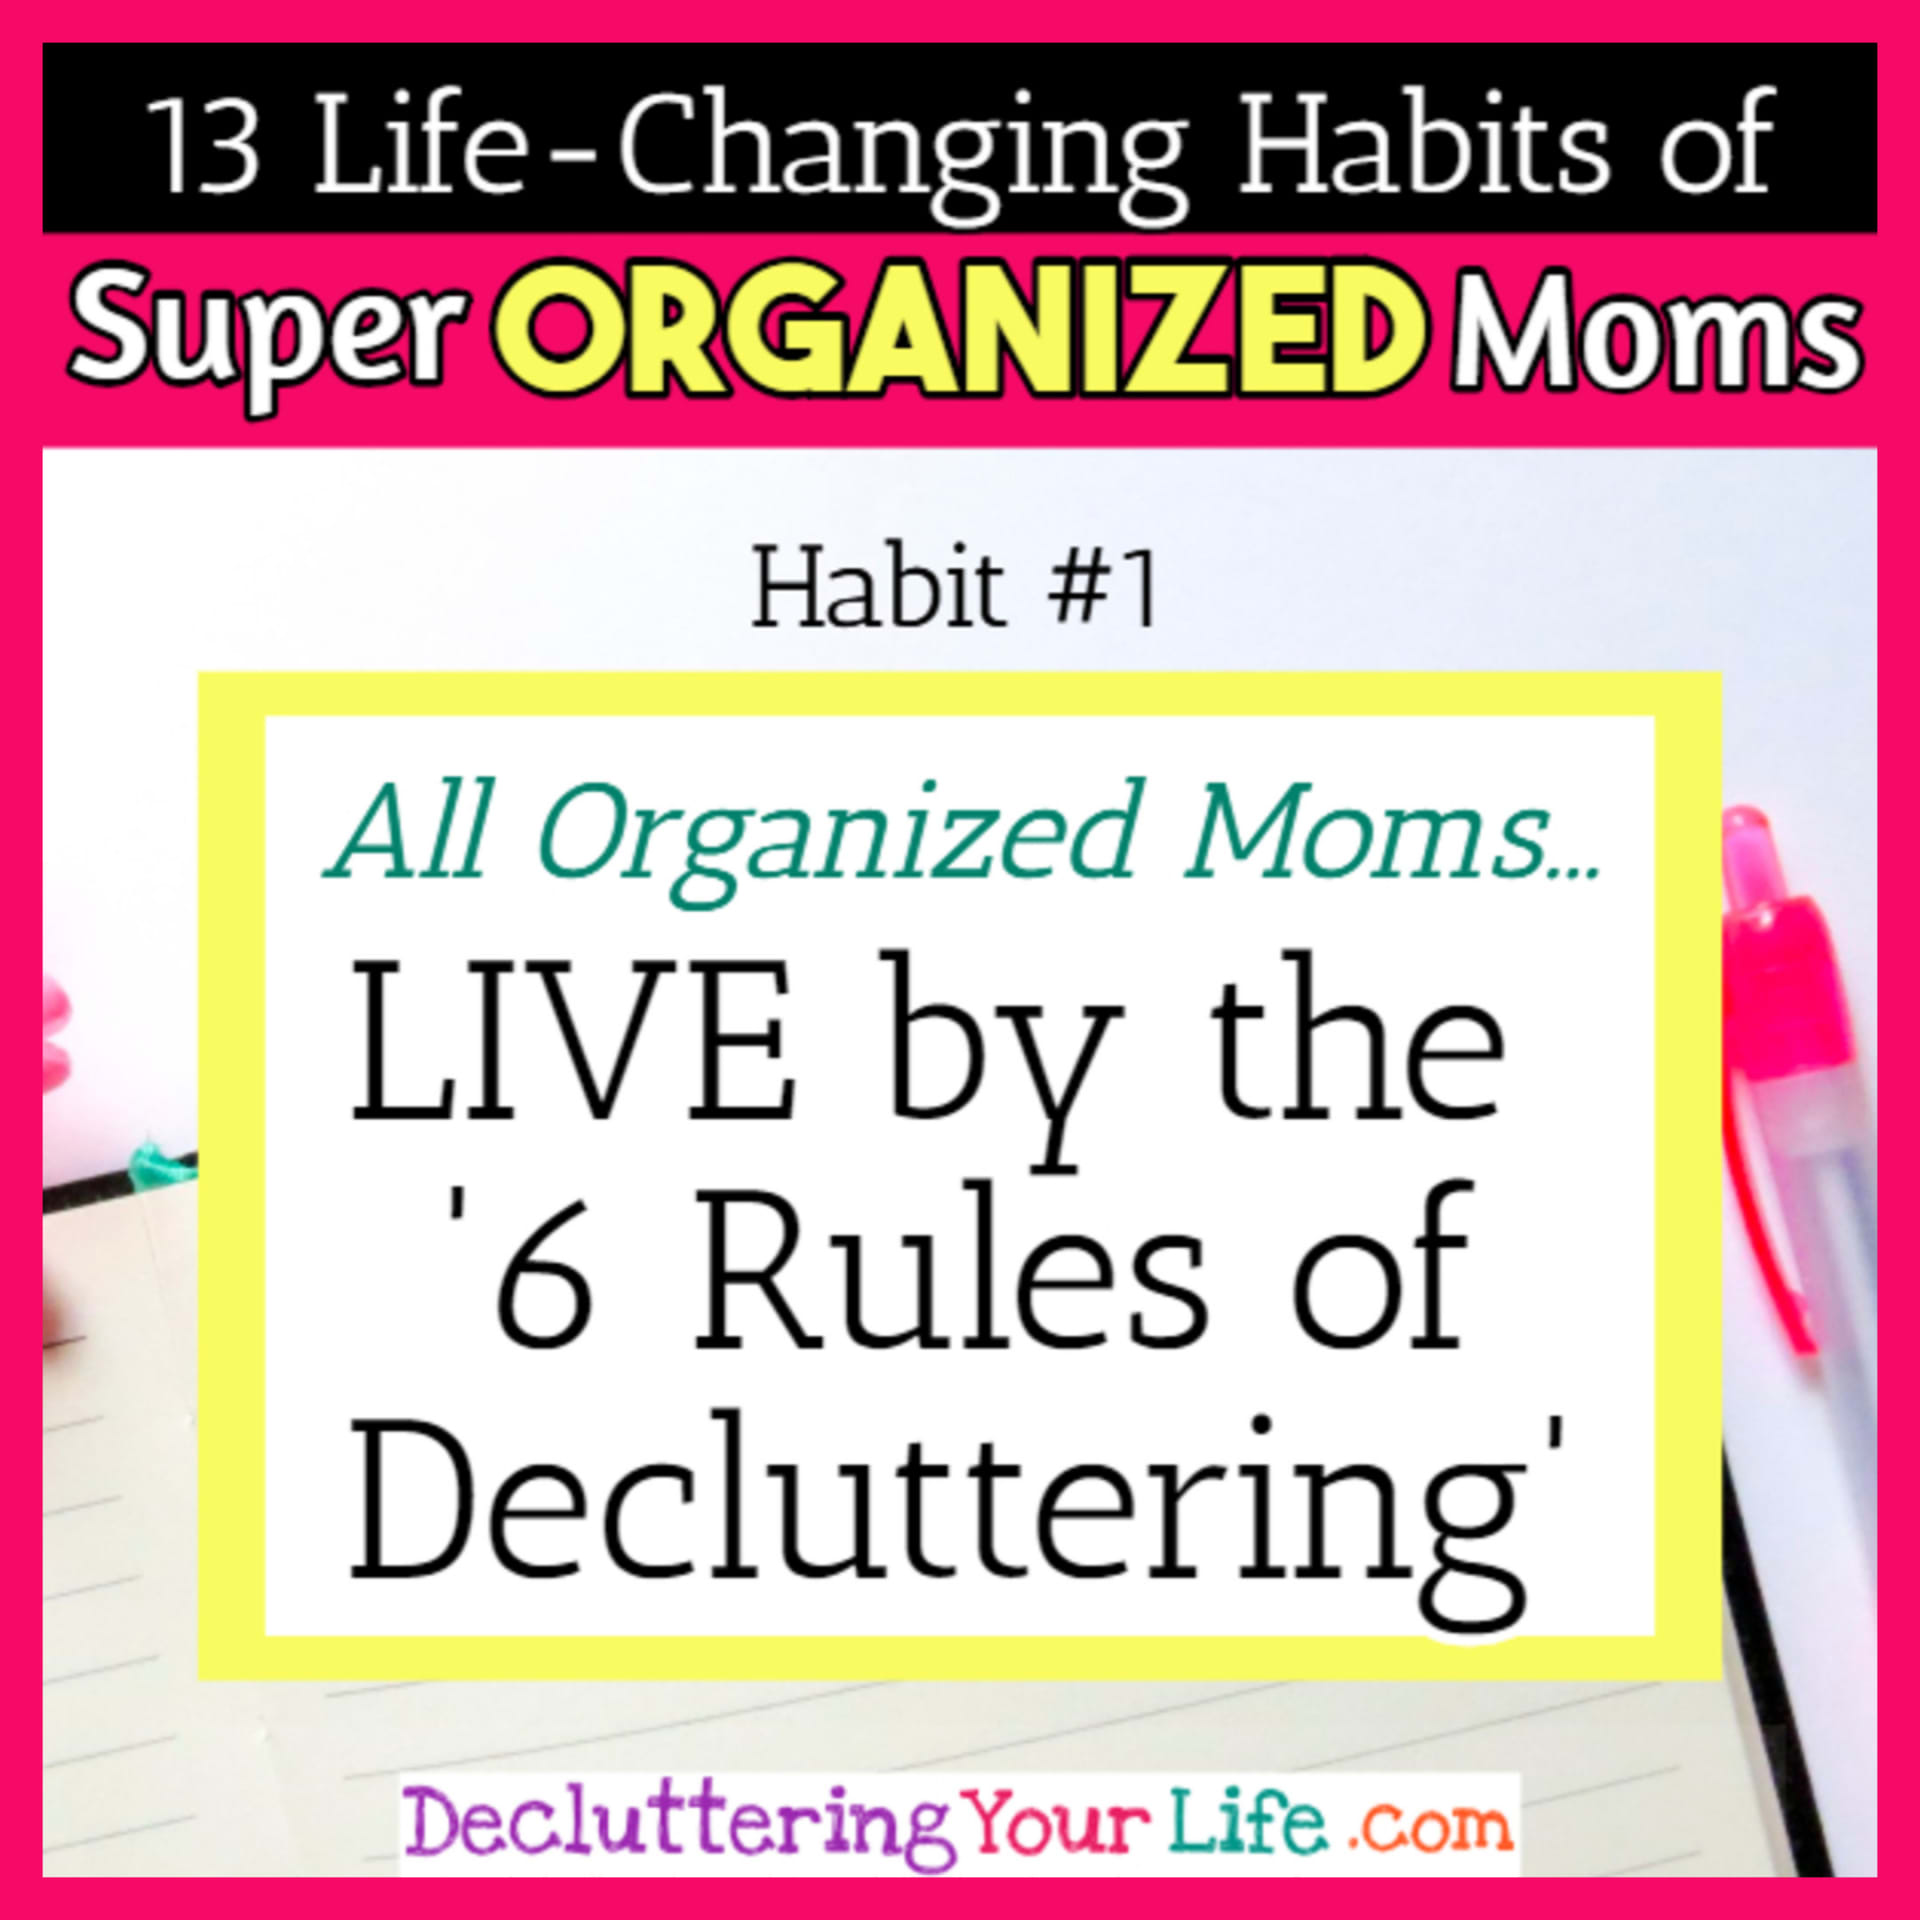 Organized moms know how to declutter and organize room by room without getting overwhelmed - 13 Habits of Super Organized Mom - How To Be An Organized Mom (whether you work OR stay at home